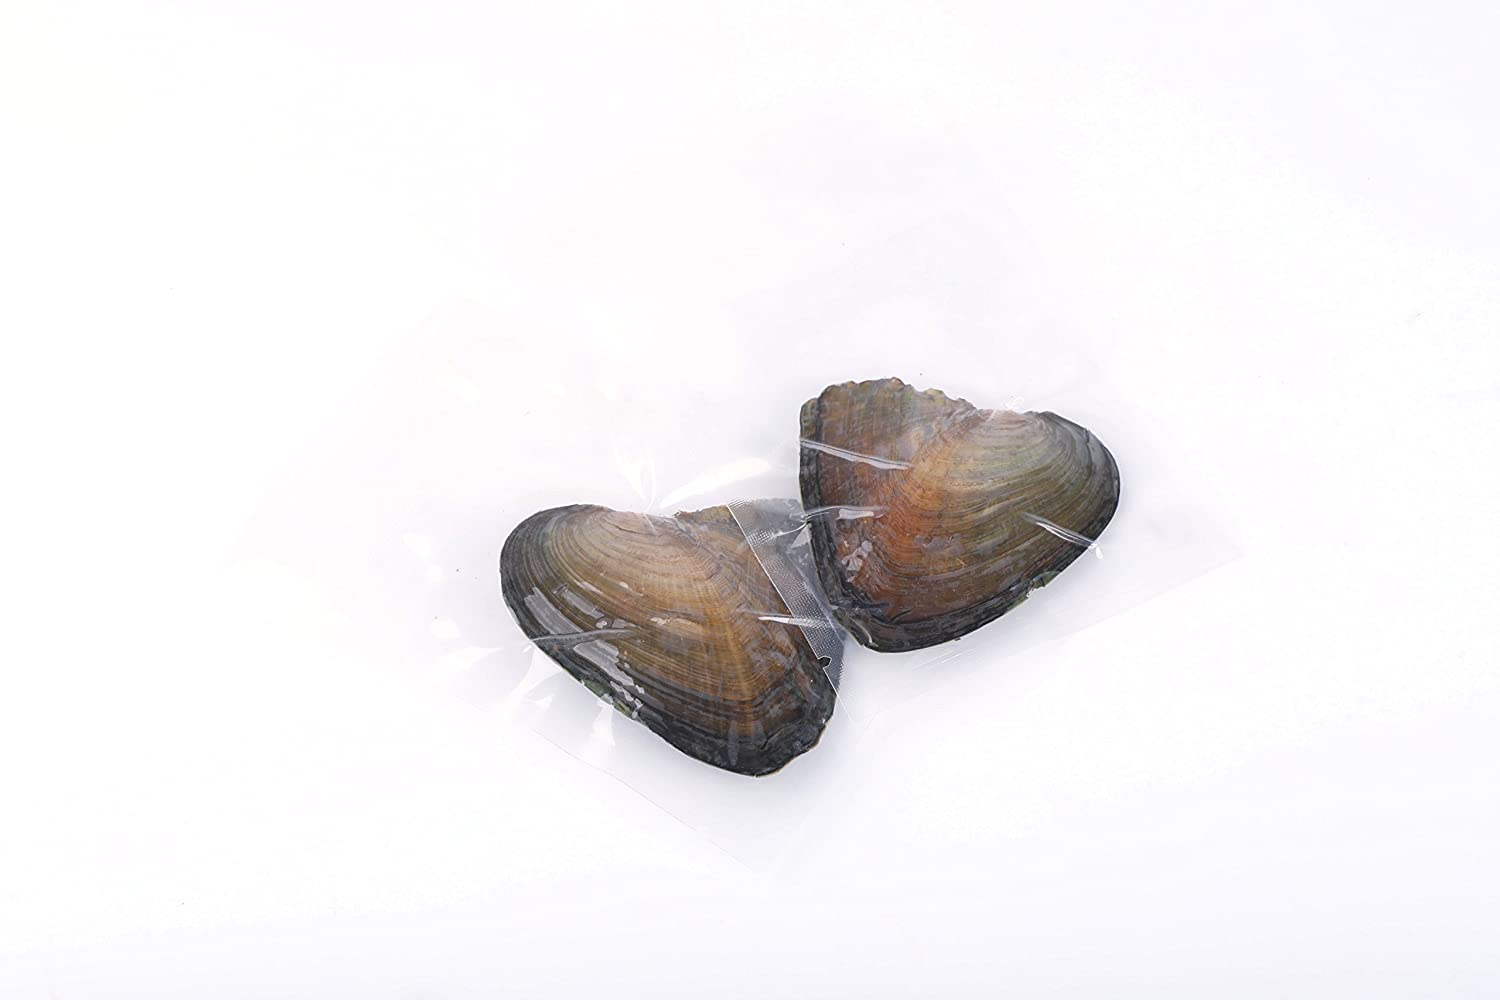 7-8mm SEASAN Quadruplet Oyster Pearls Freshwater Cultured Oysters with 4 Pearls Inside 10 PC